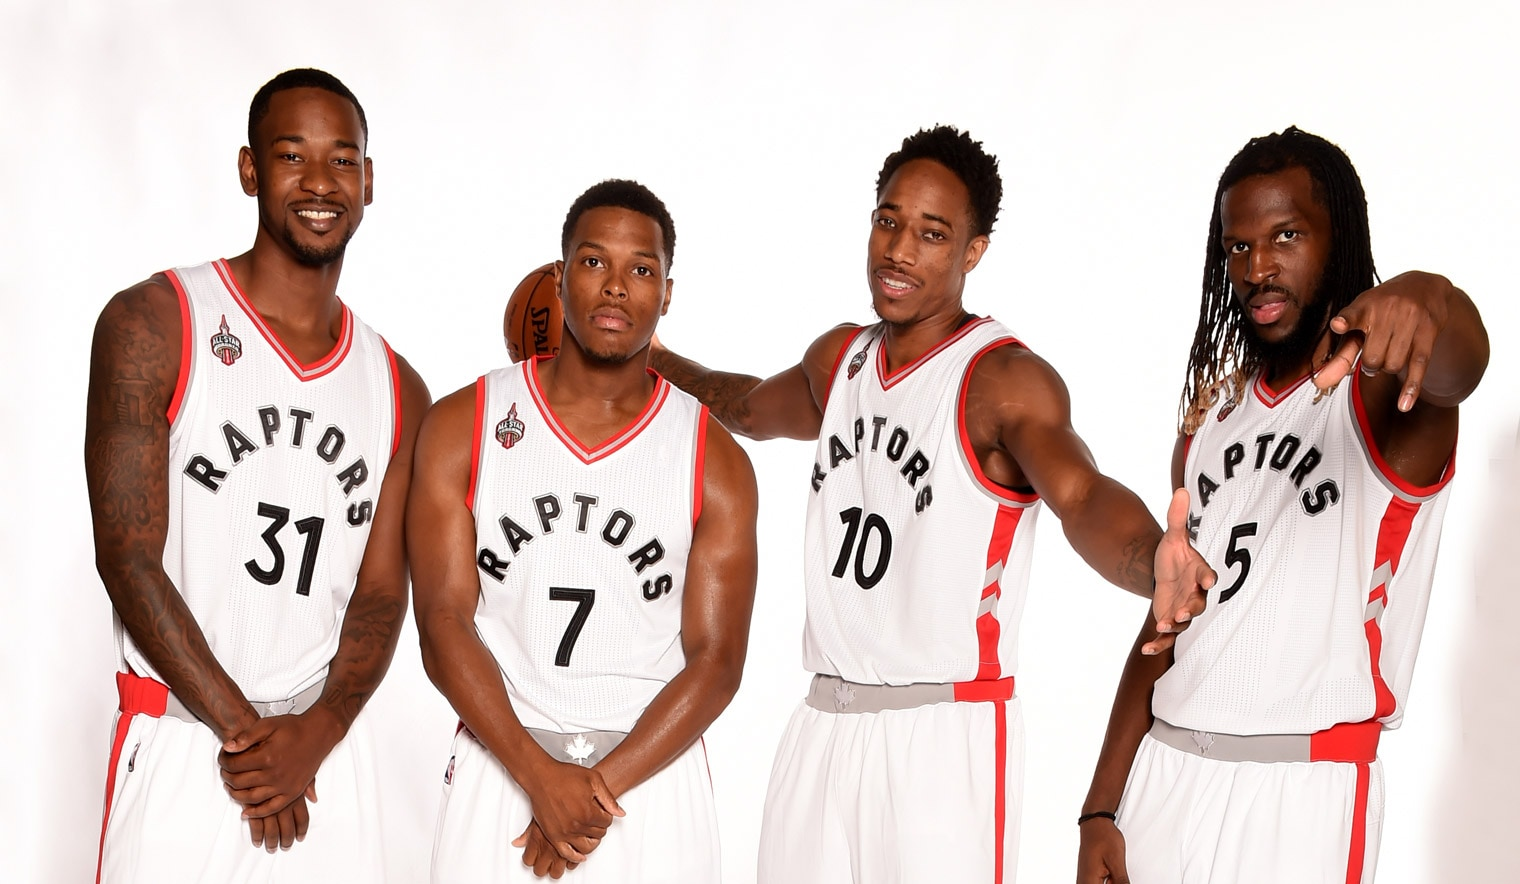 Raptors: Raptors Announce Media Day And Training Camp Schedule